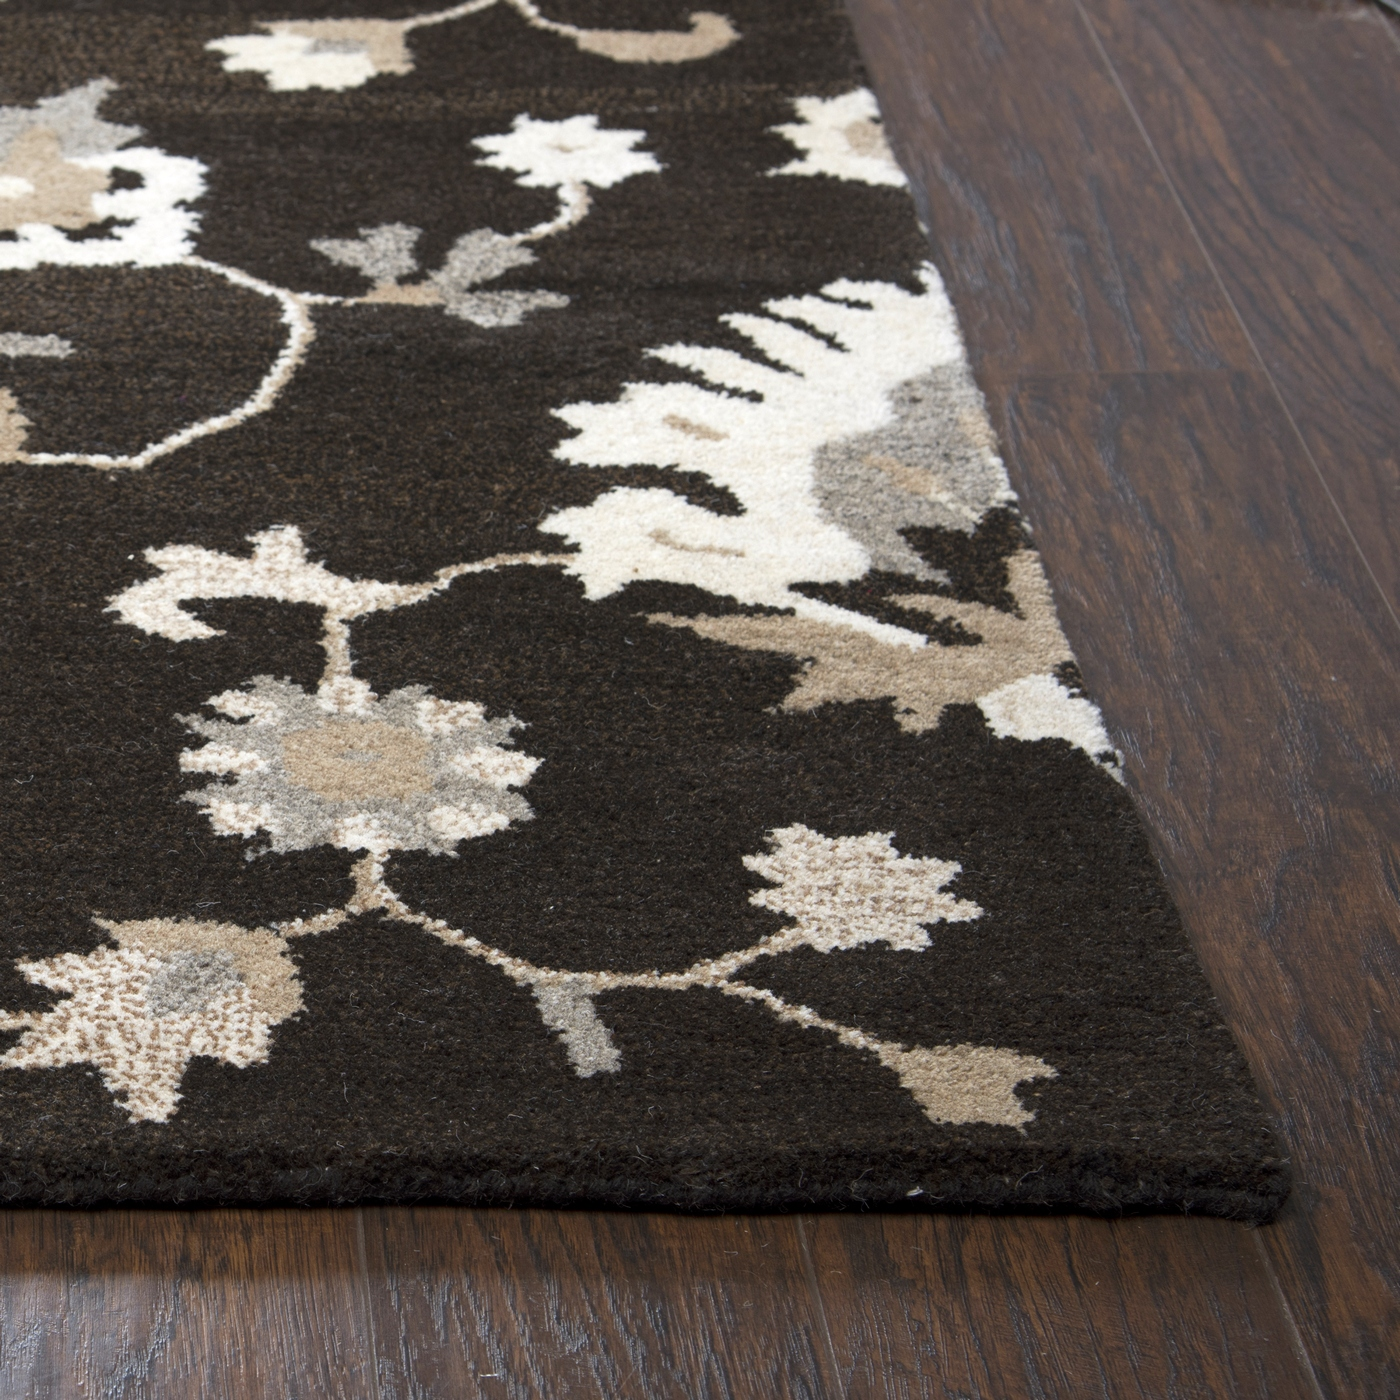 Suffolk Floral Vines Wool Area Rug In Brown Amp Natural 8